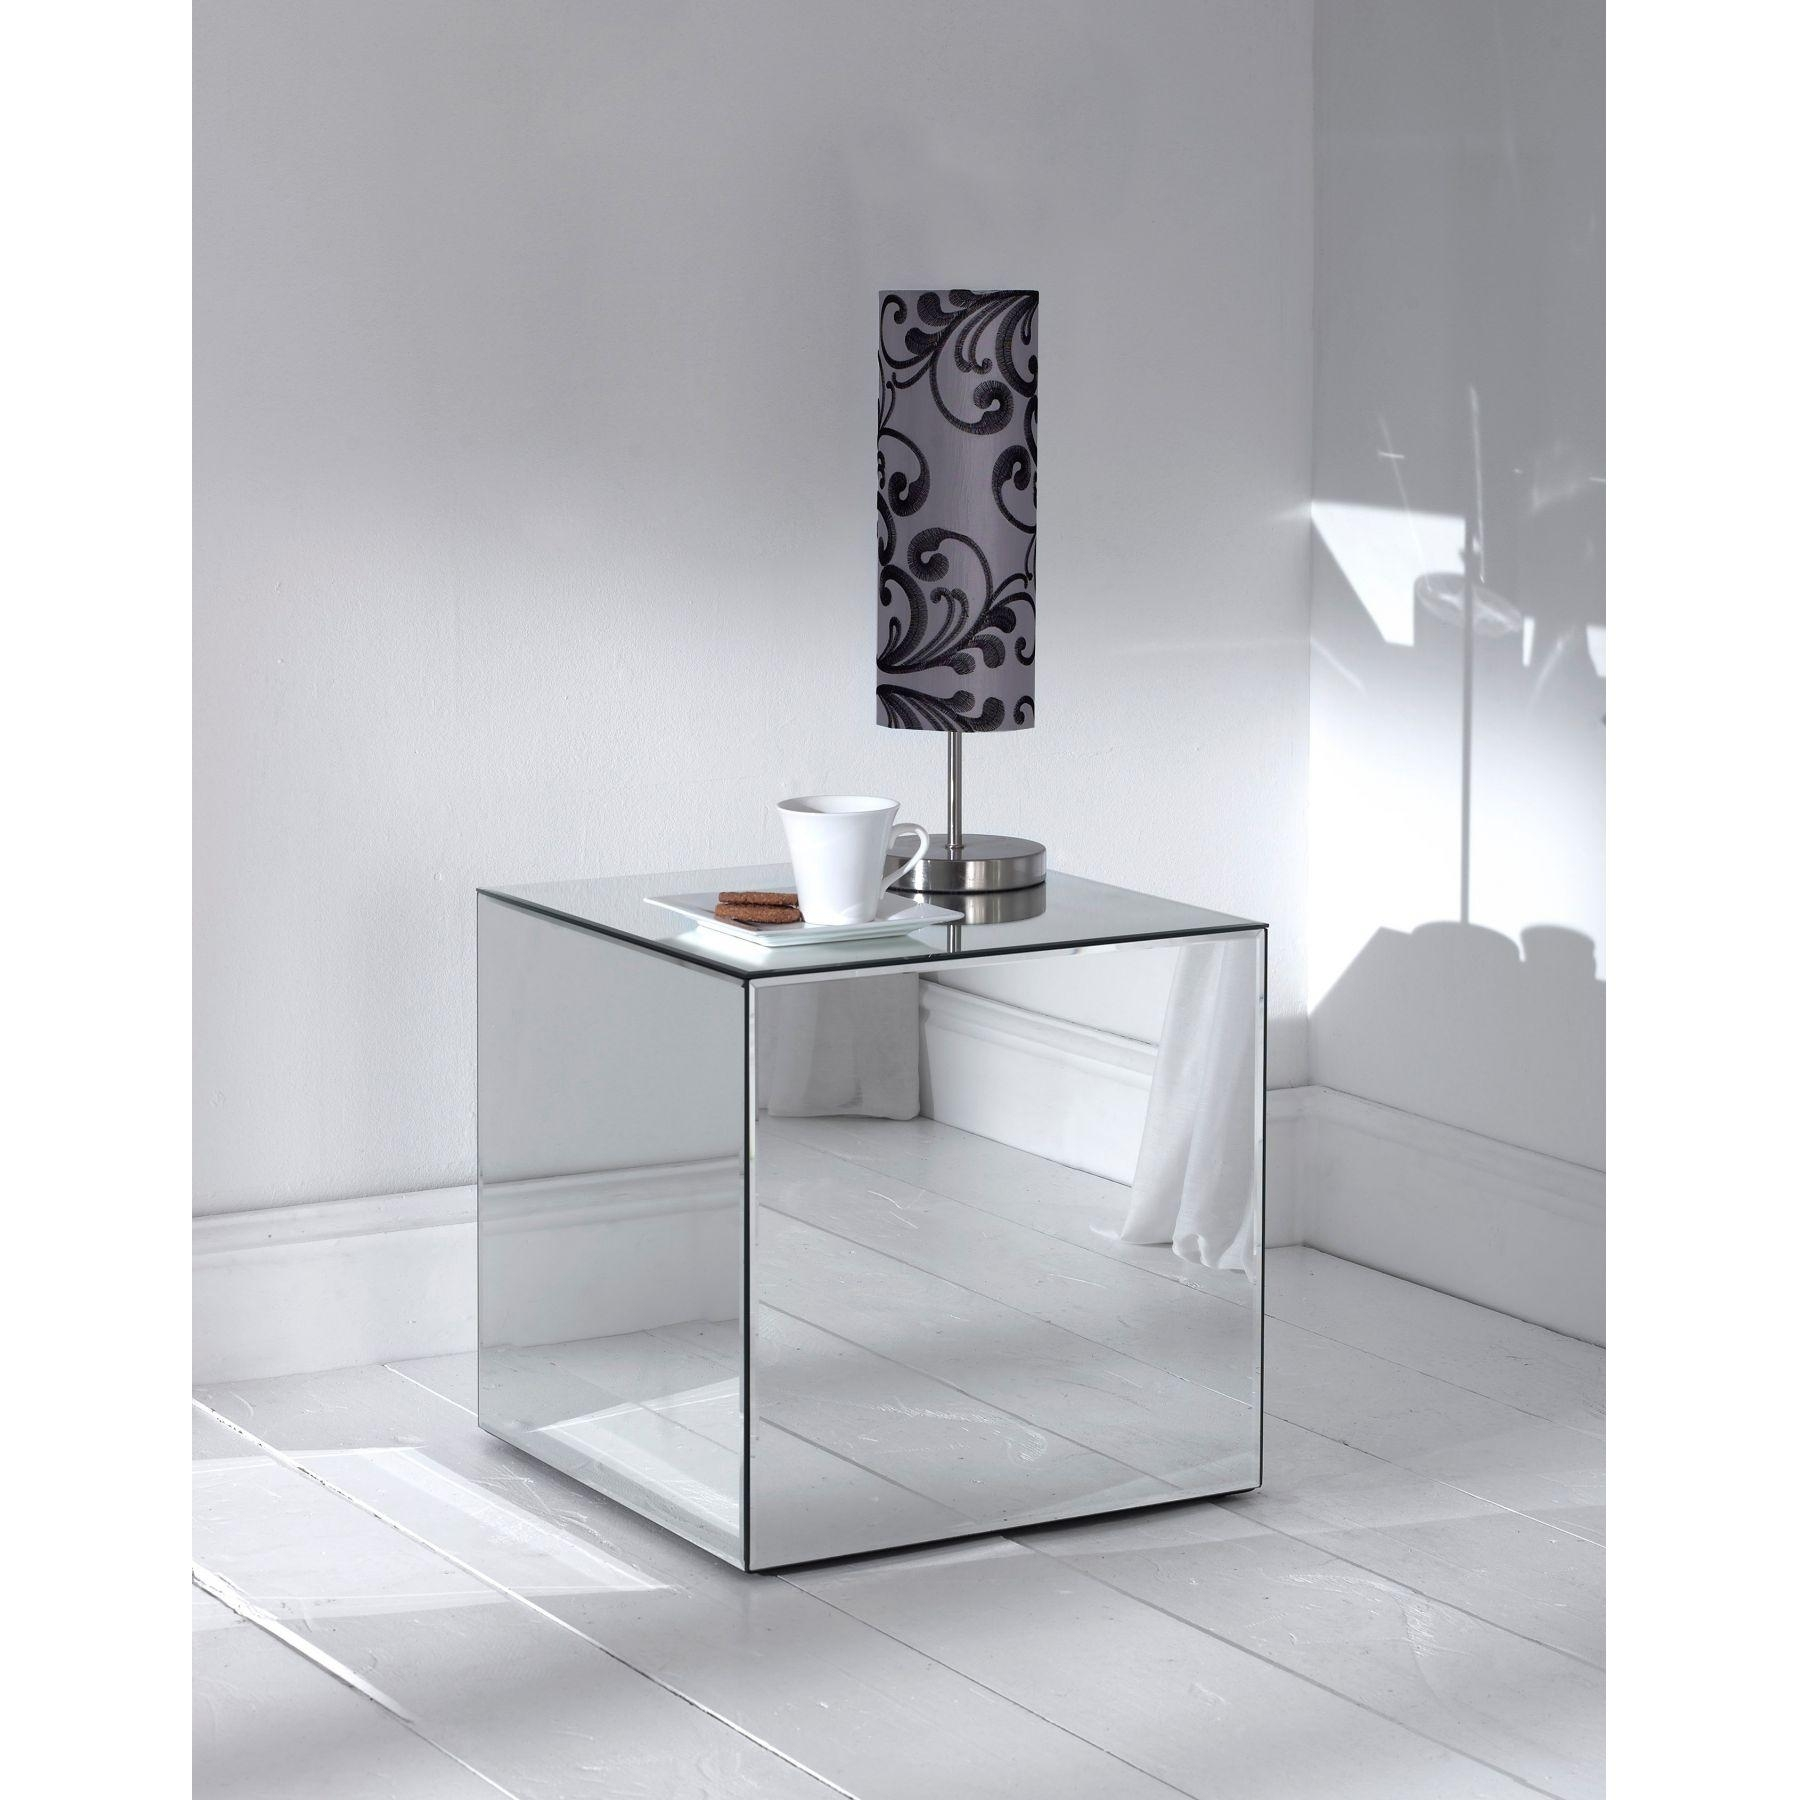 Furniture: Interesting Target Mirrored Furniture For Home With Mirrored Furniture (Image 9 of 20)